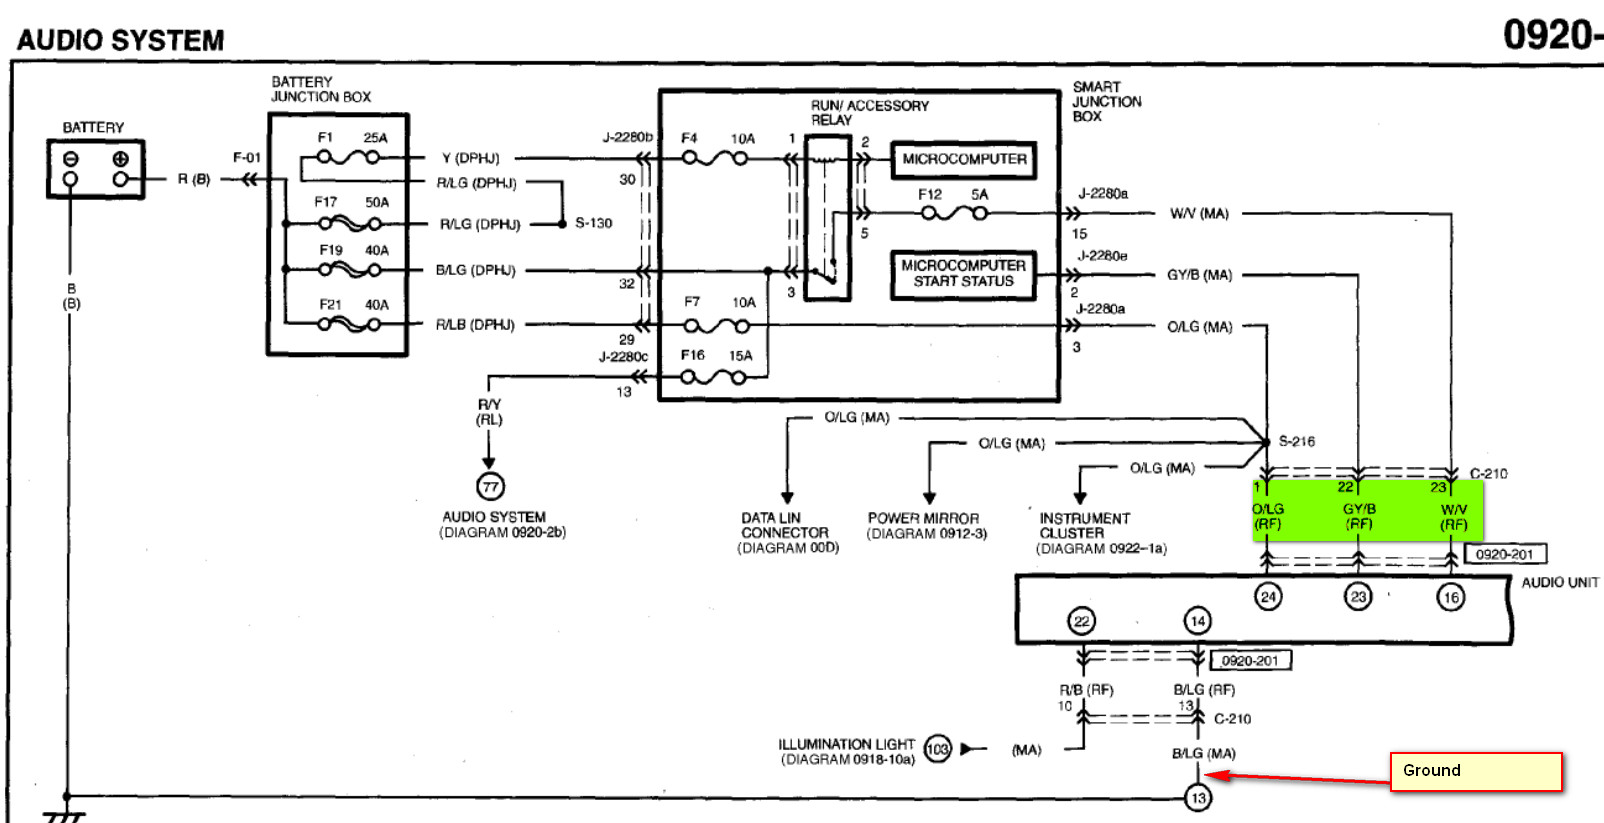 mazda 626 vacuum diagram  mazda  free engine image for